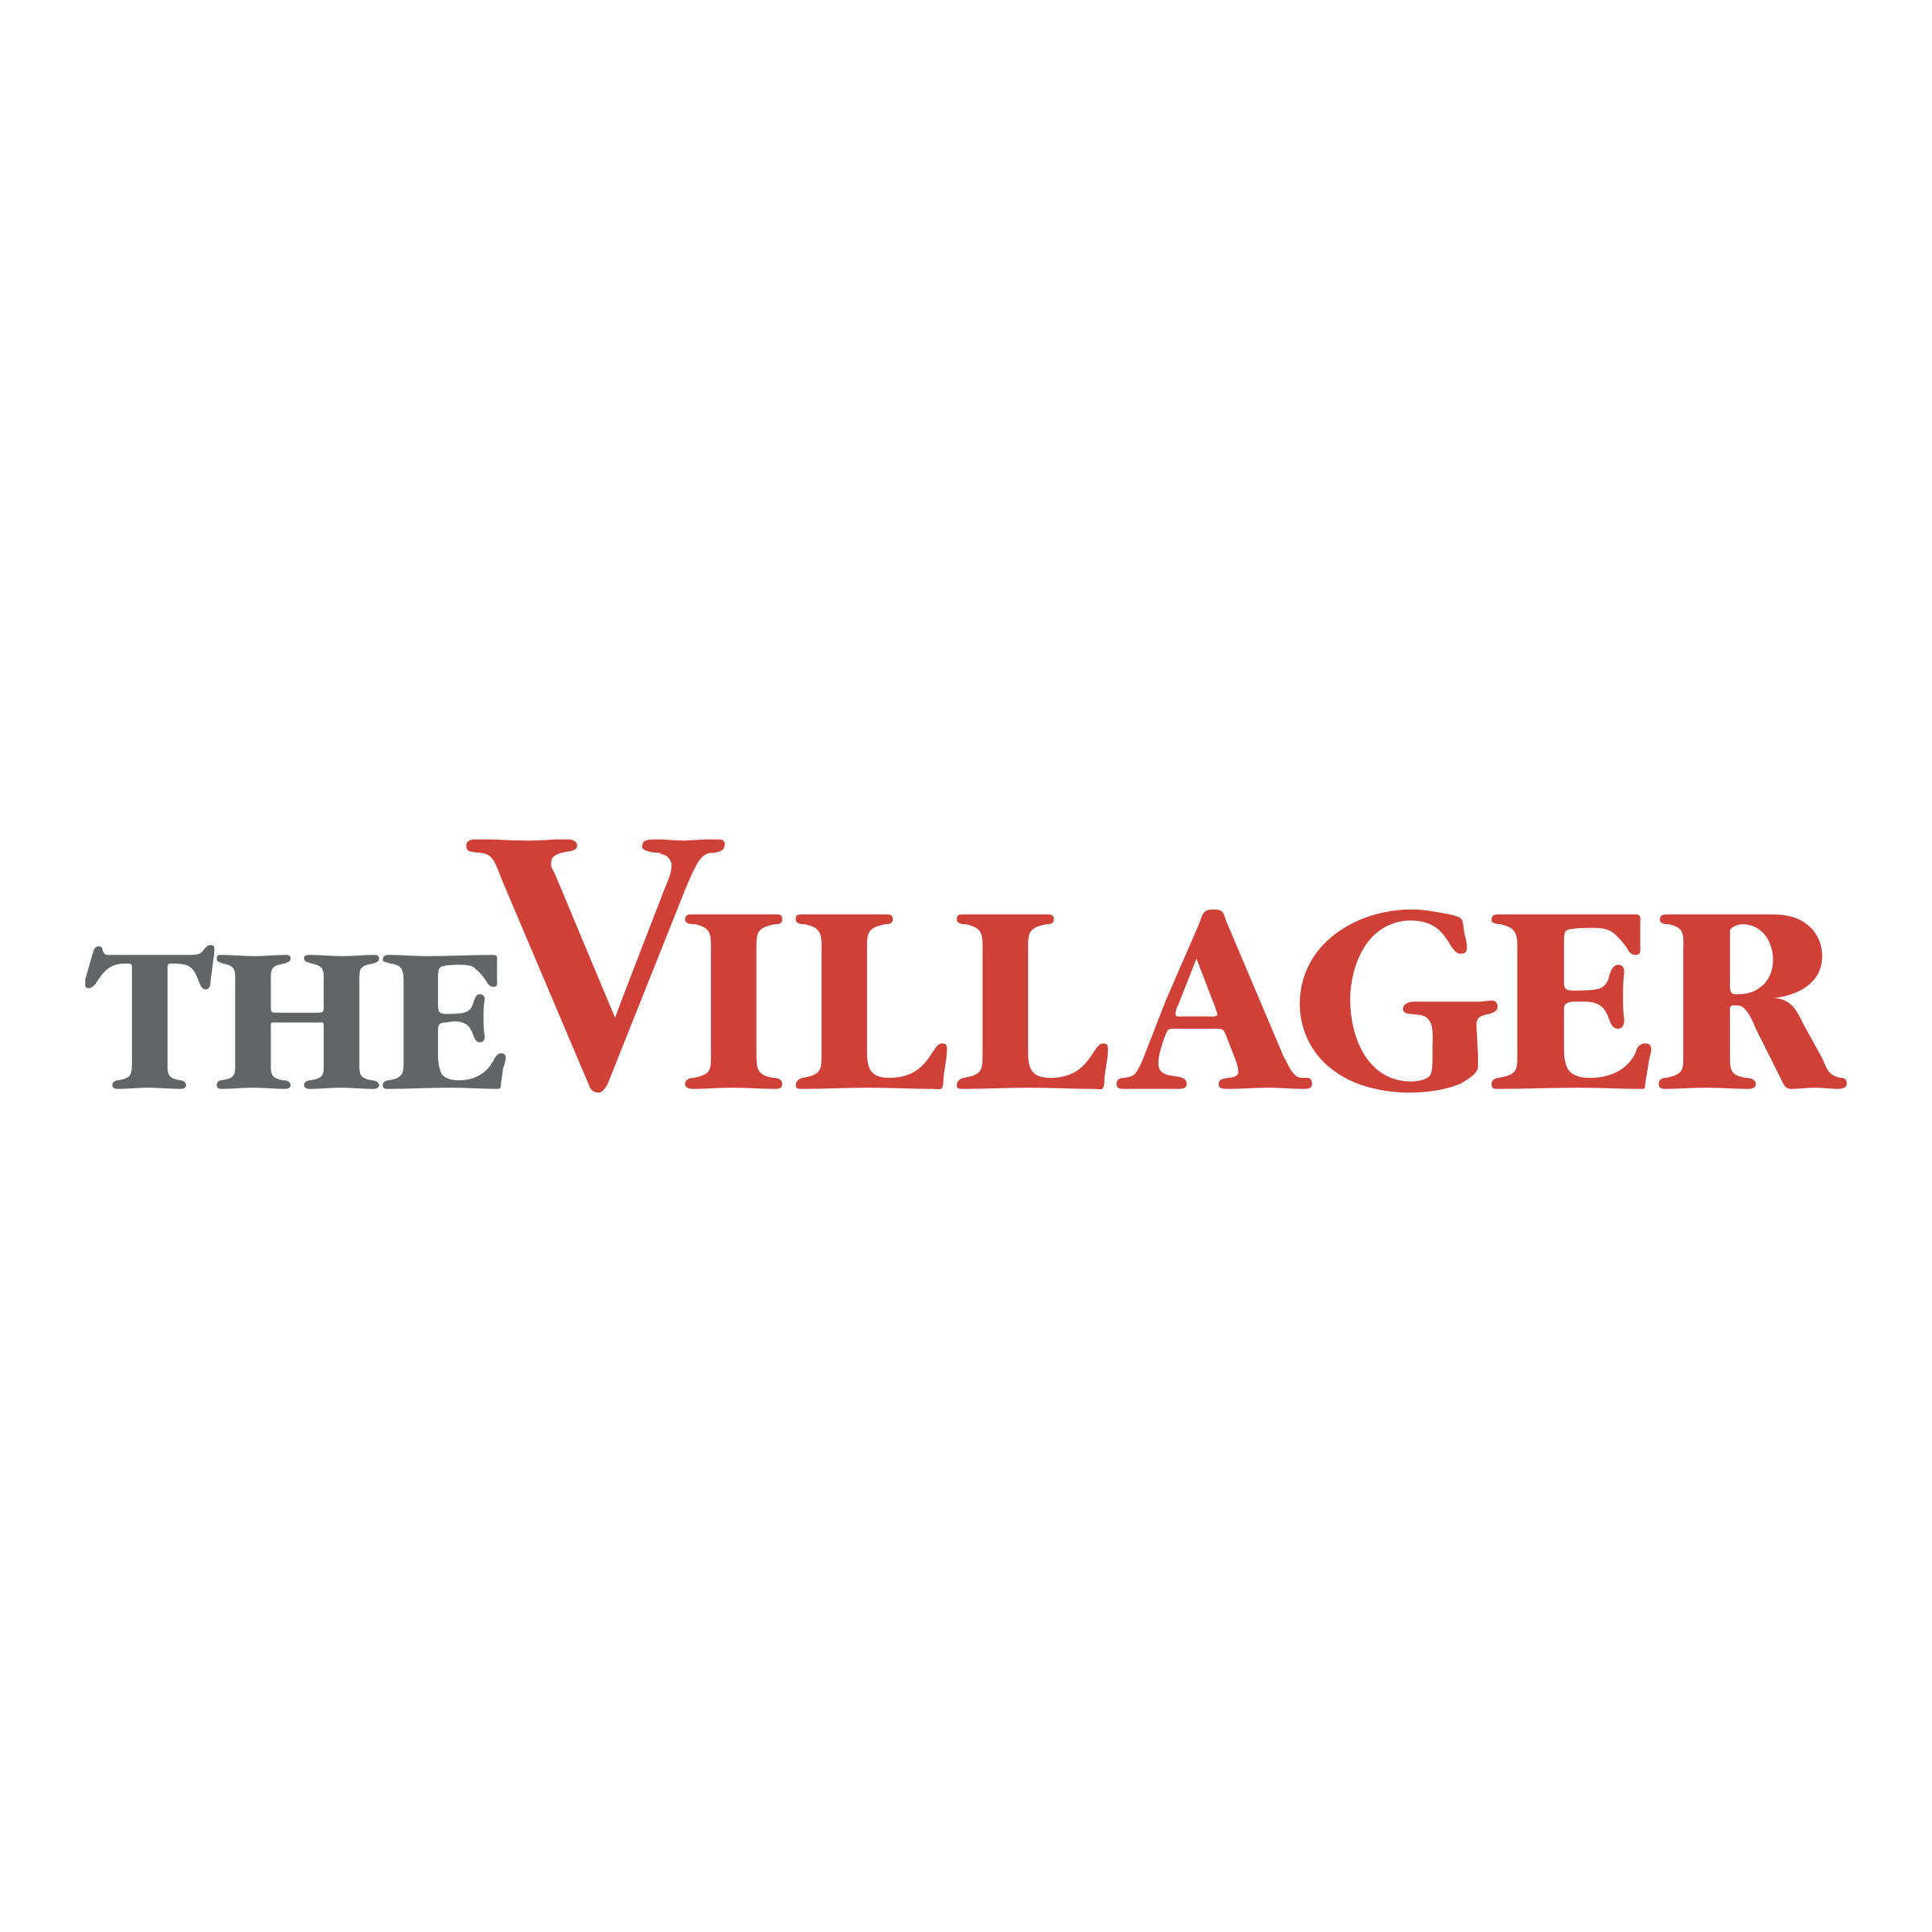 the-villager-logo-png-transparent.png